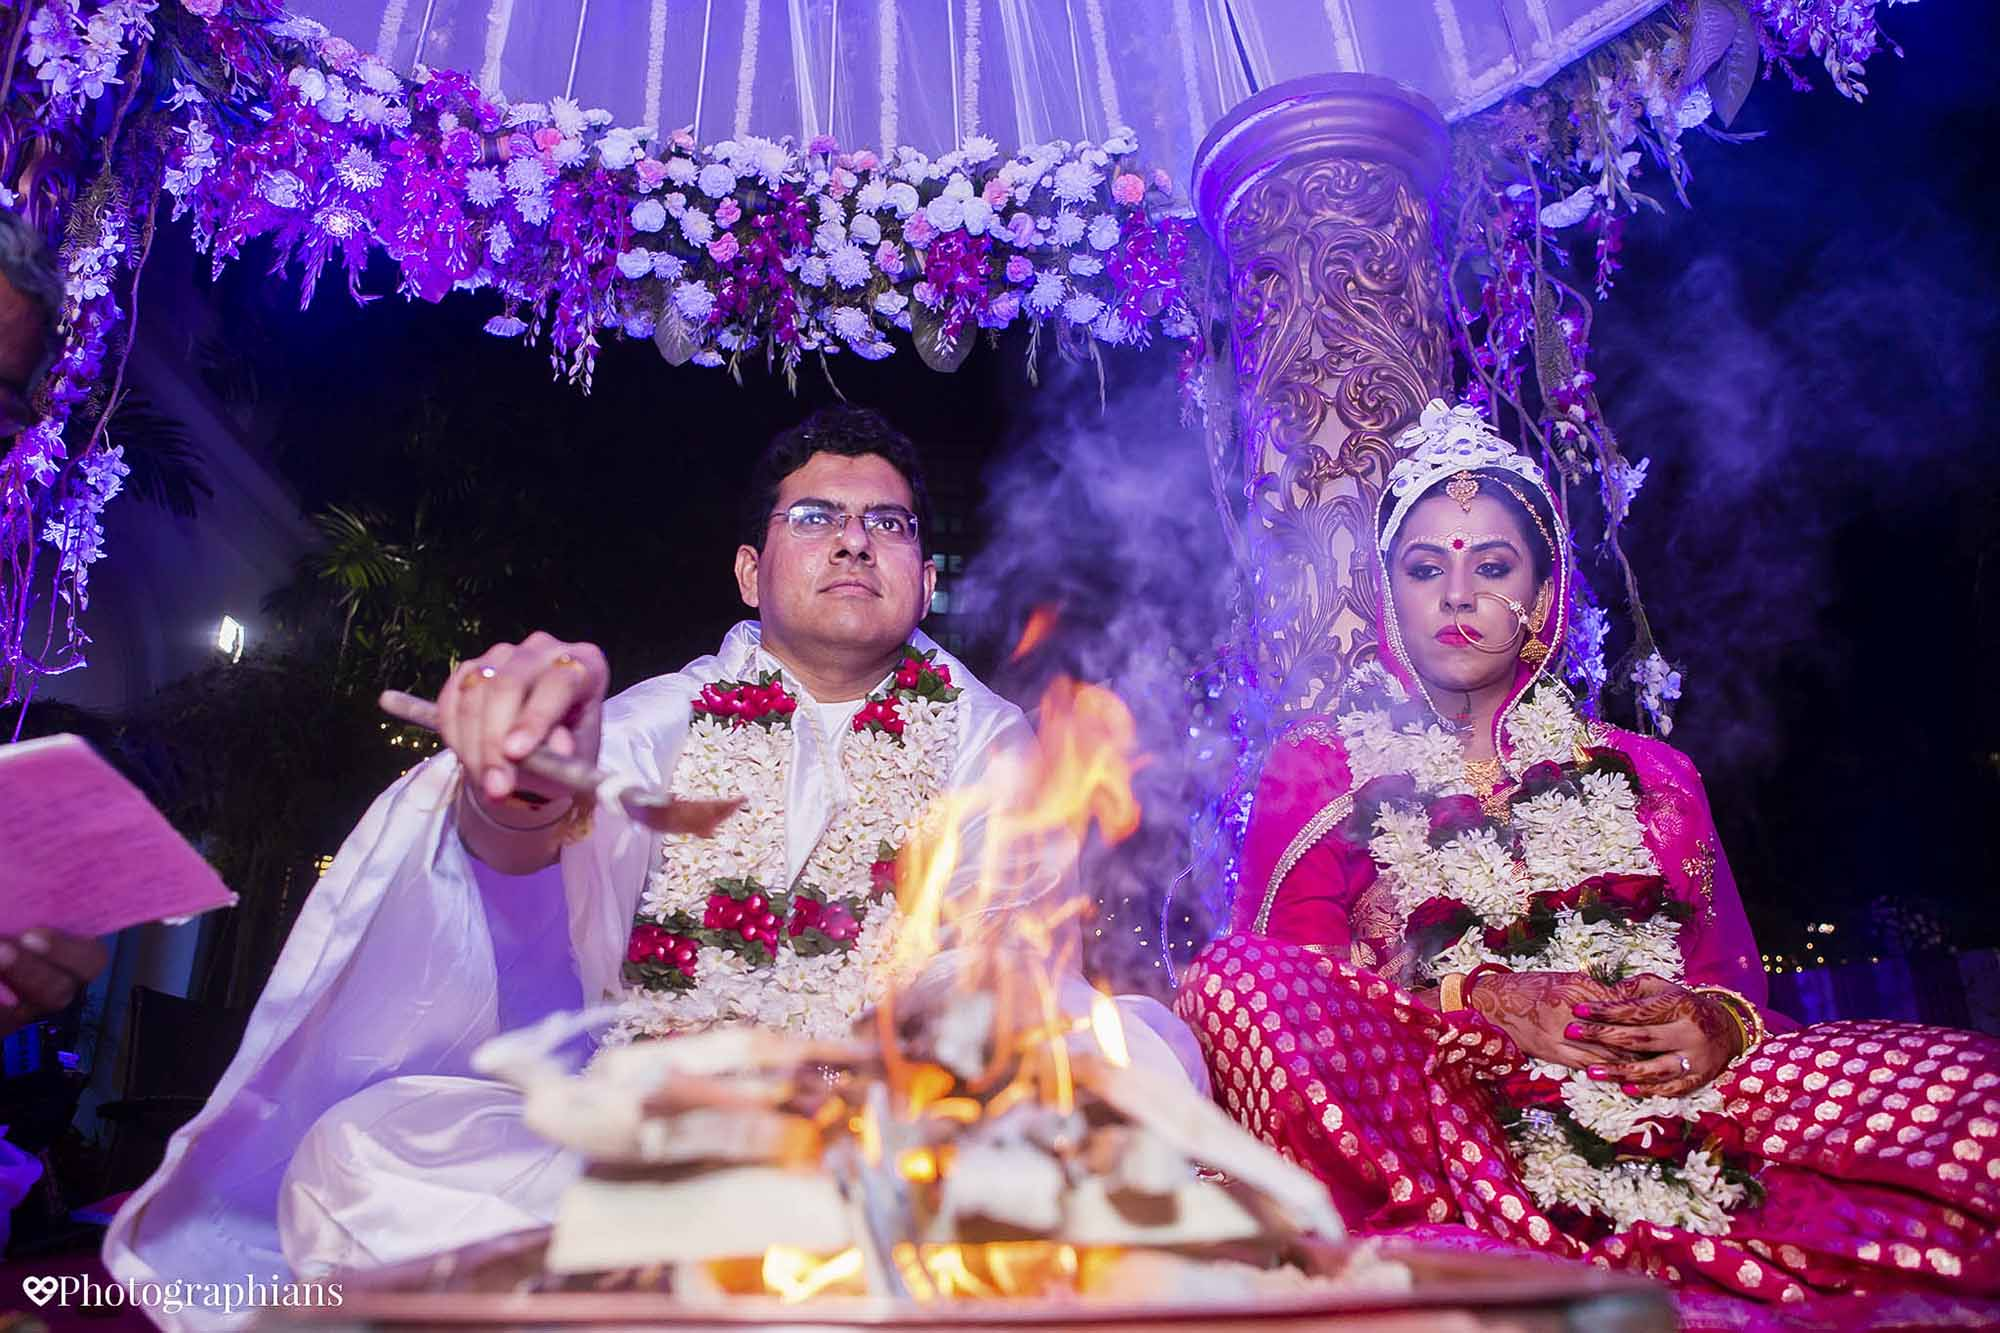 Bengali_Wedding_Photography_Kolkata_Photographians_137